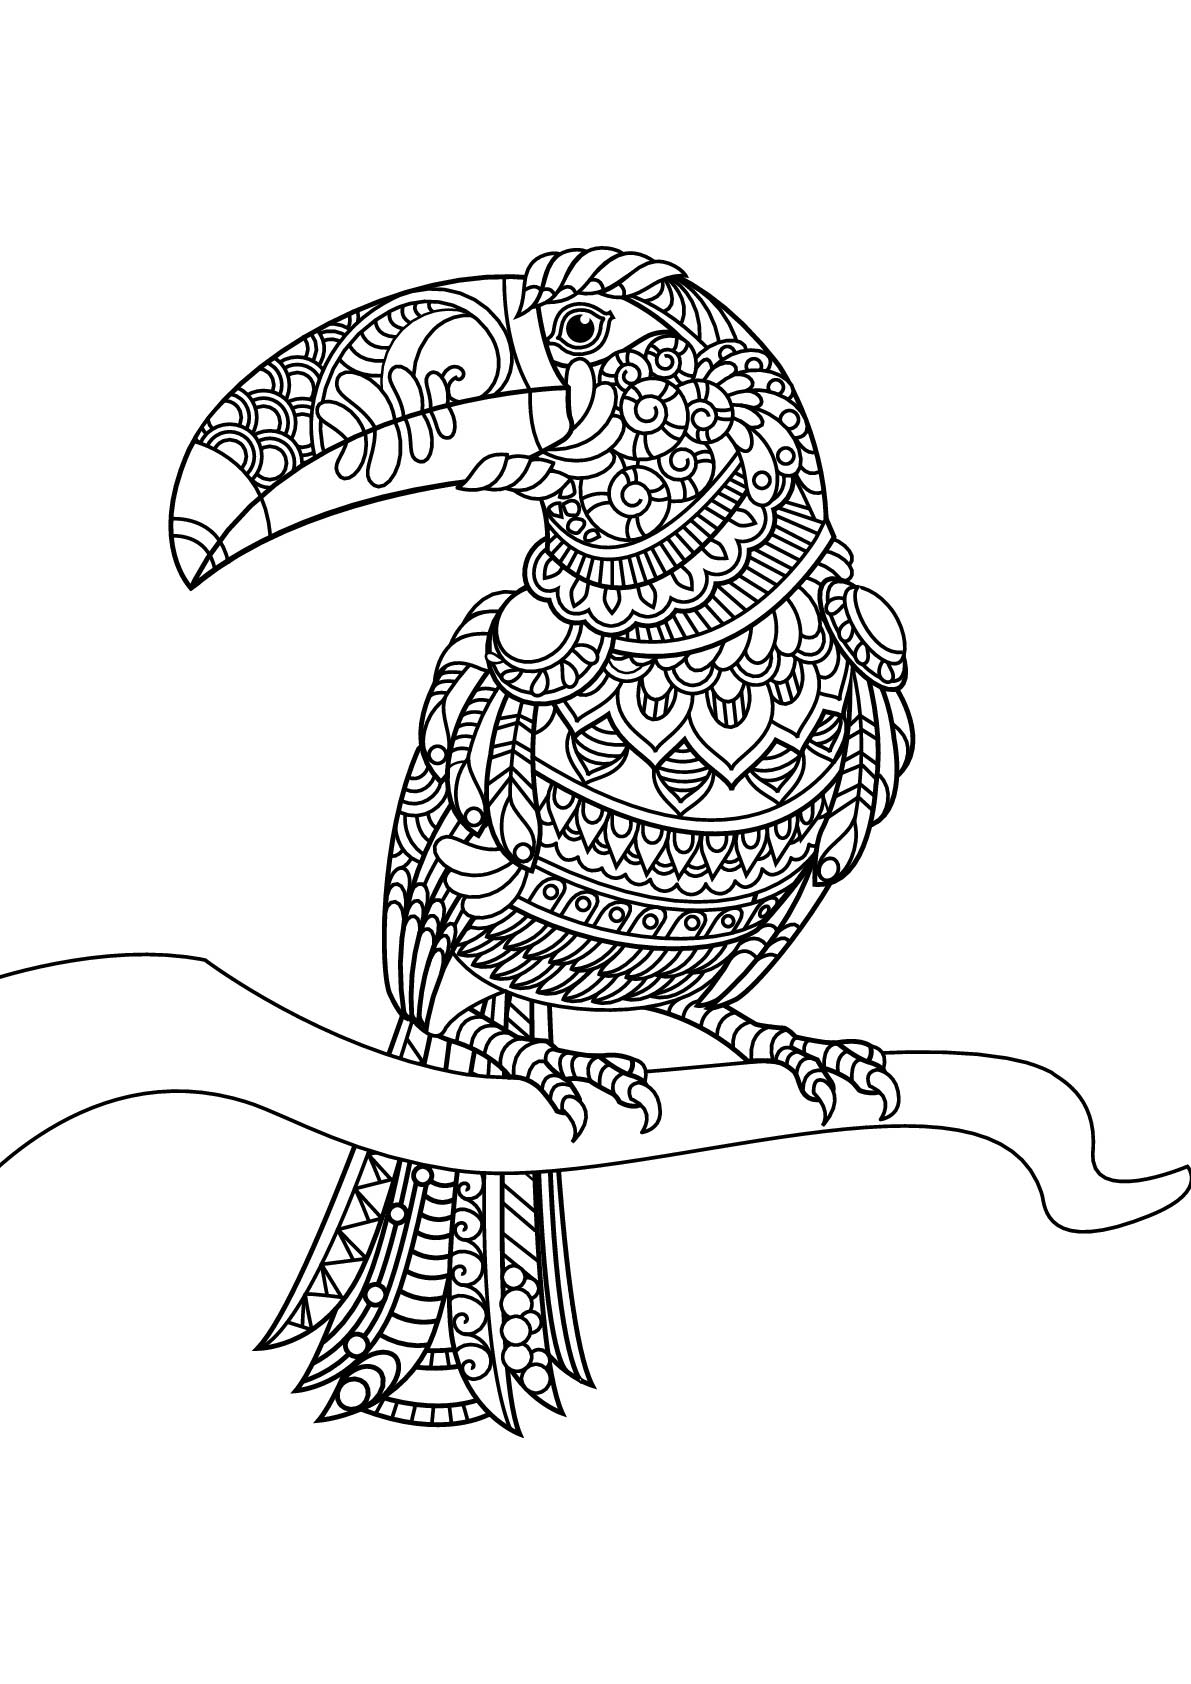 coloring birds for kids peacock coloring pages for kids for coloring kids birds